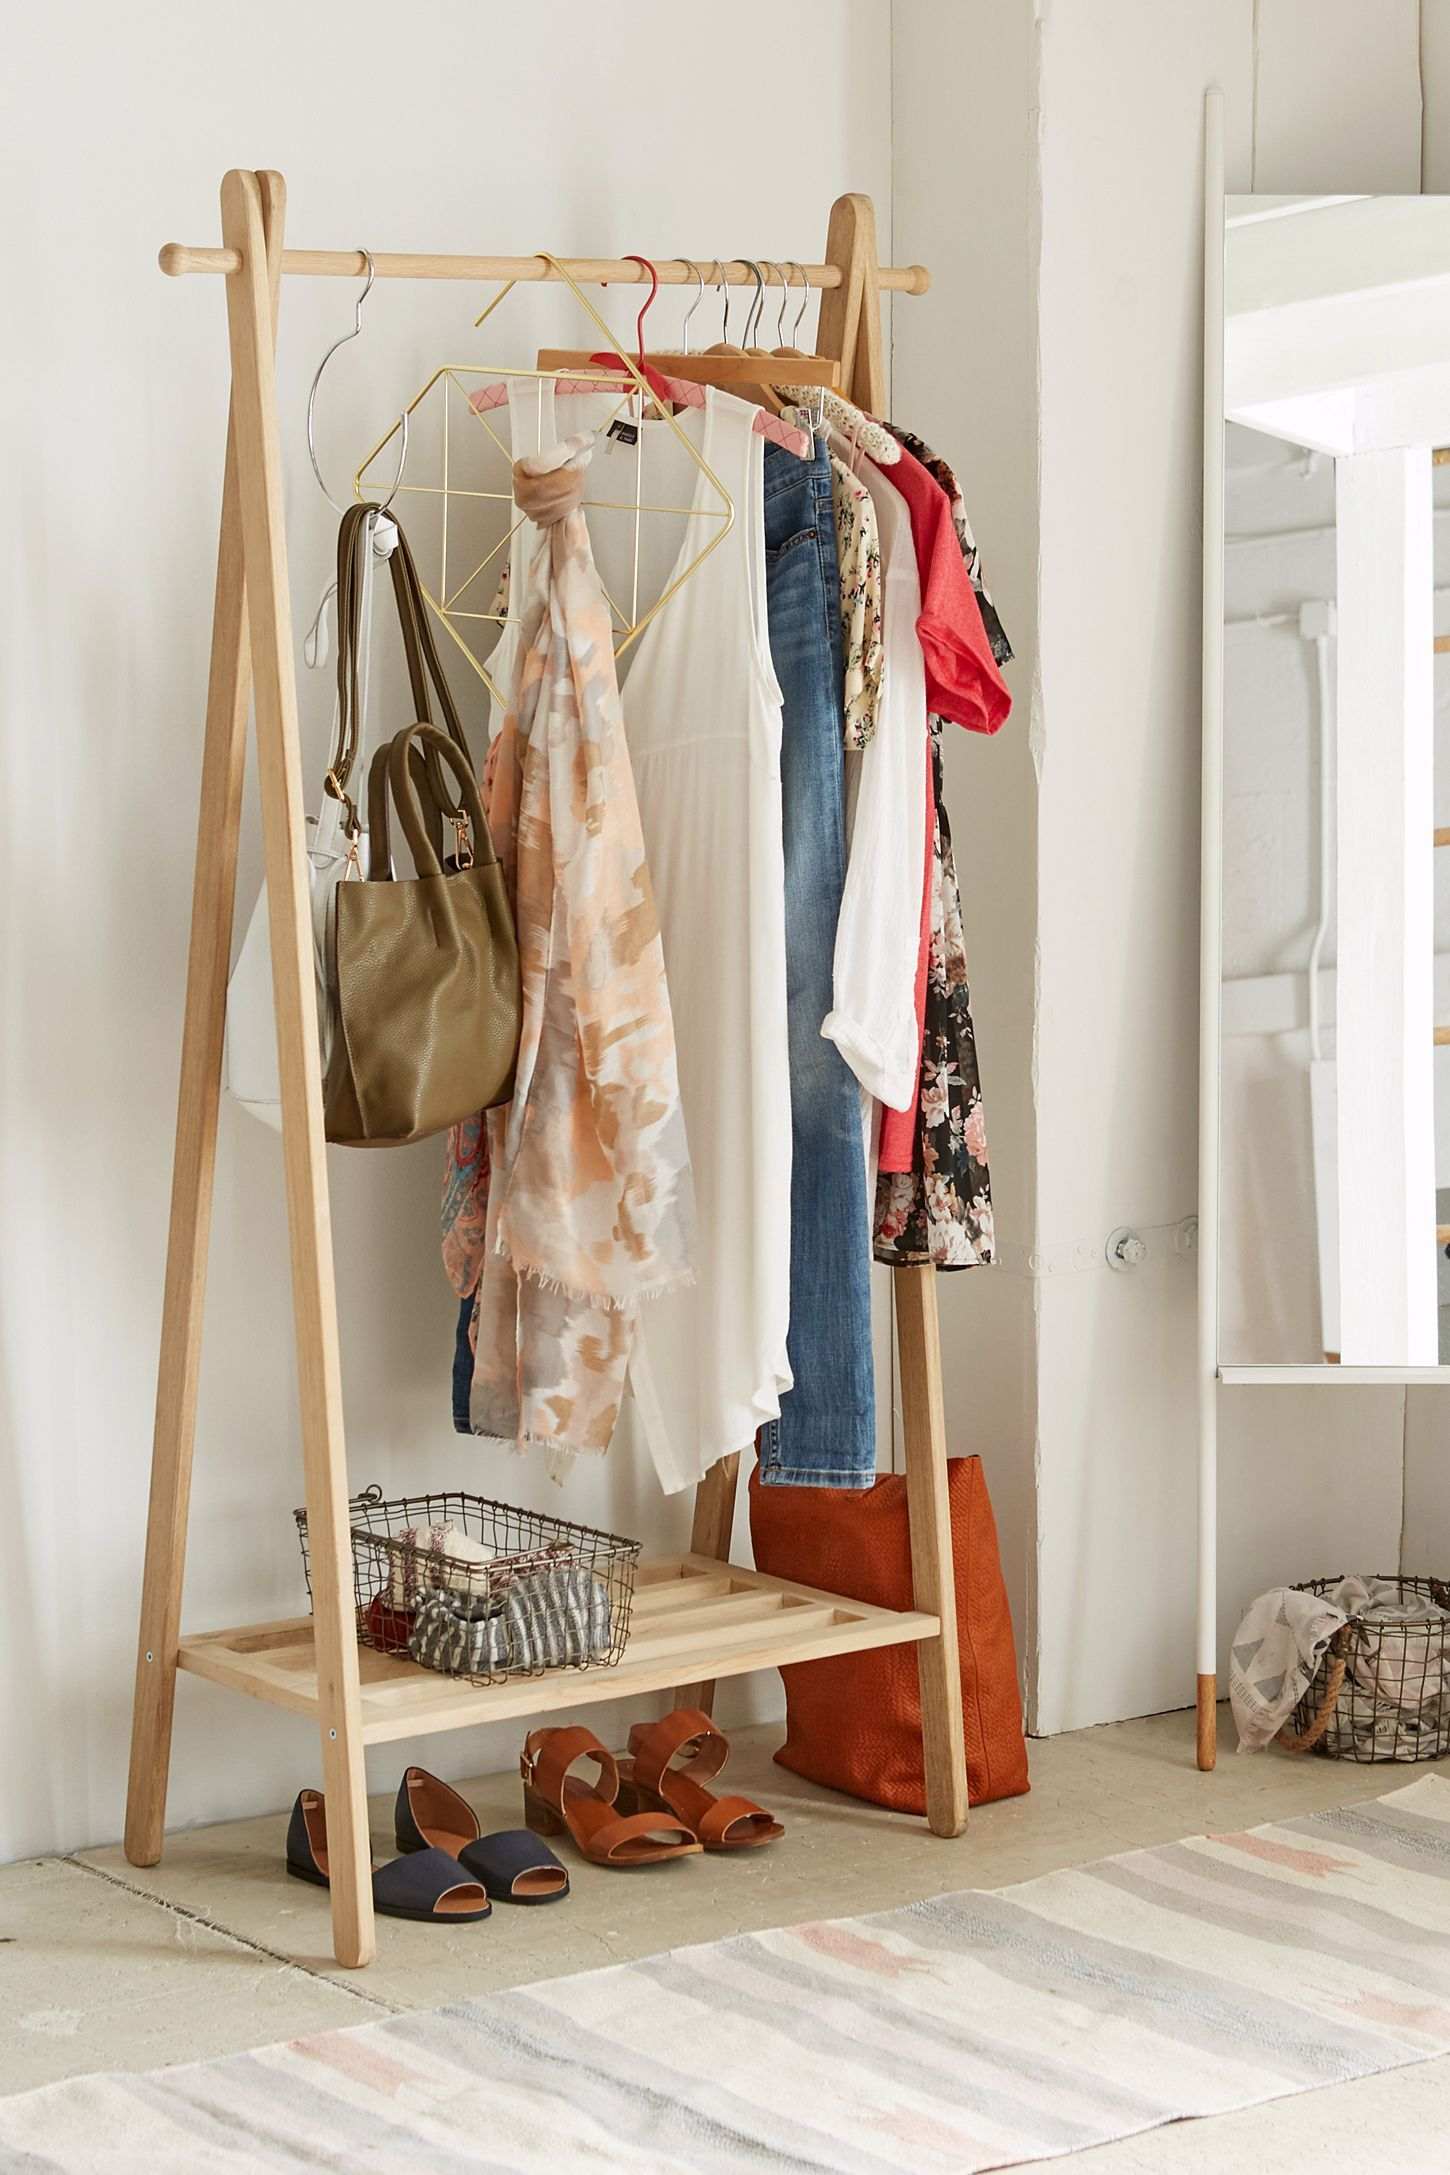 Kleiderständer Urban Outfitters Wooden Clothing Rack Bedroom Project Wood Clothing Rack Home